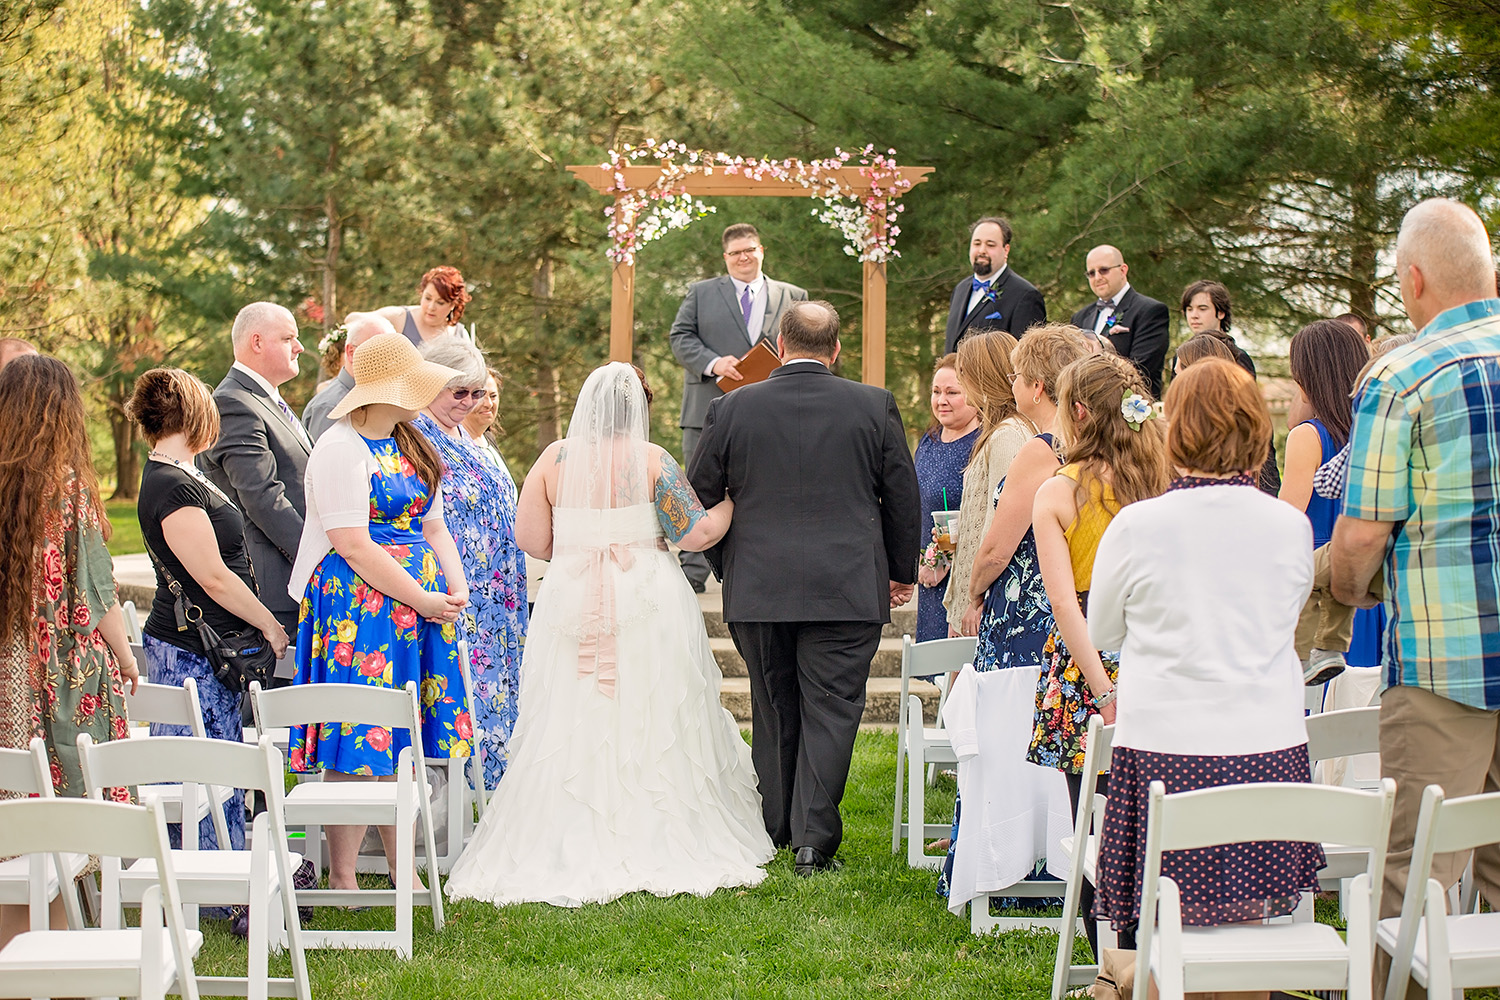 wedding-at-japanese-stroll-garden-springfield-missouri